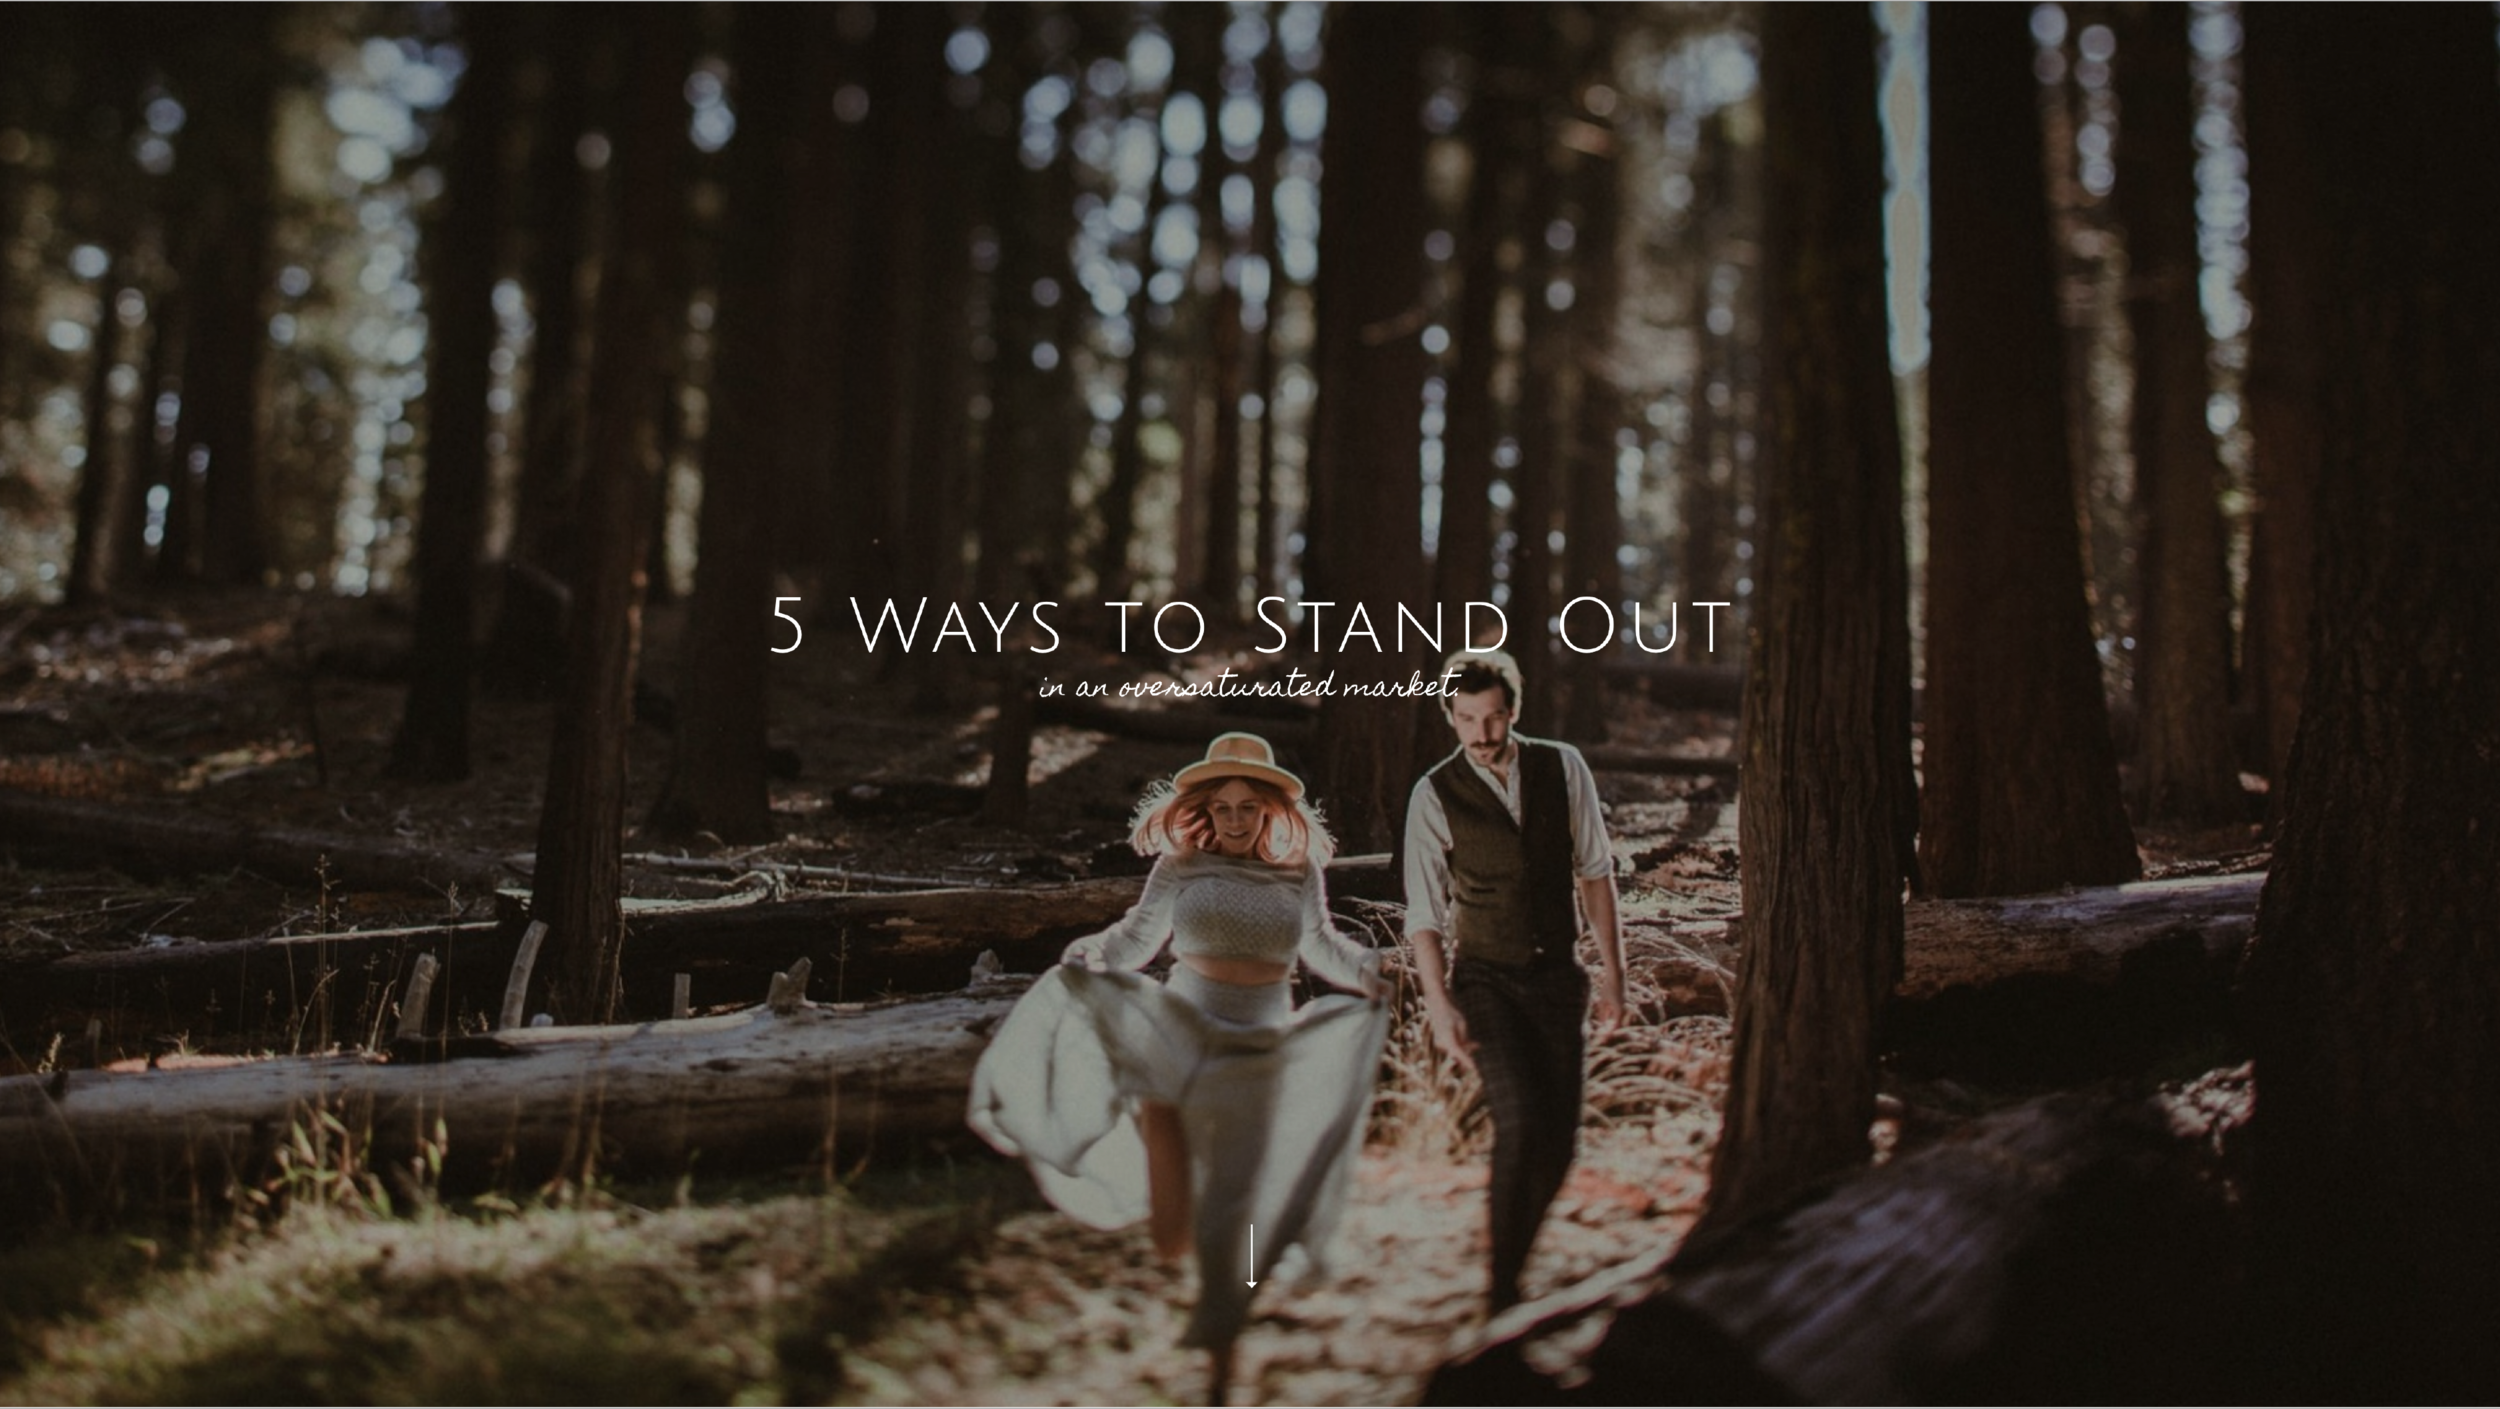 """Brandi Potter - In the last years, wedding photography has became more and more popular and it's getting harder to find your own voice in an oversaturated market. Brandi Potter has put together for you a free guide stating """"5 Ways to Stand Out""""."""